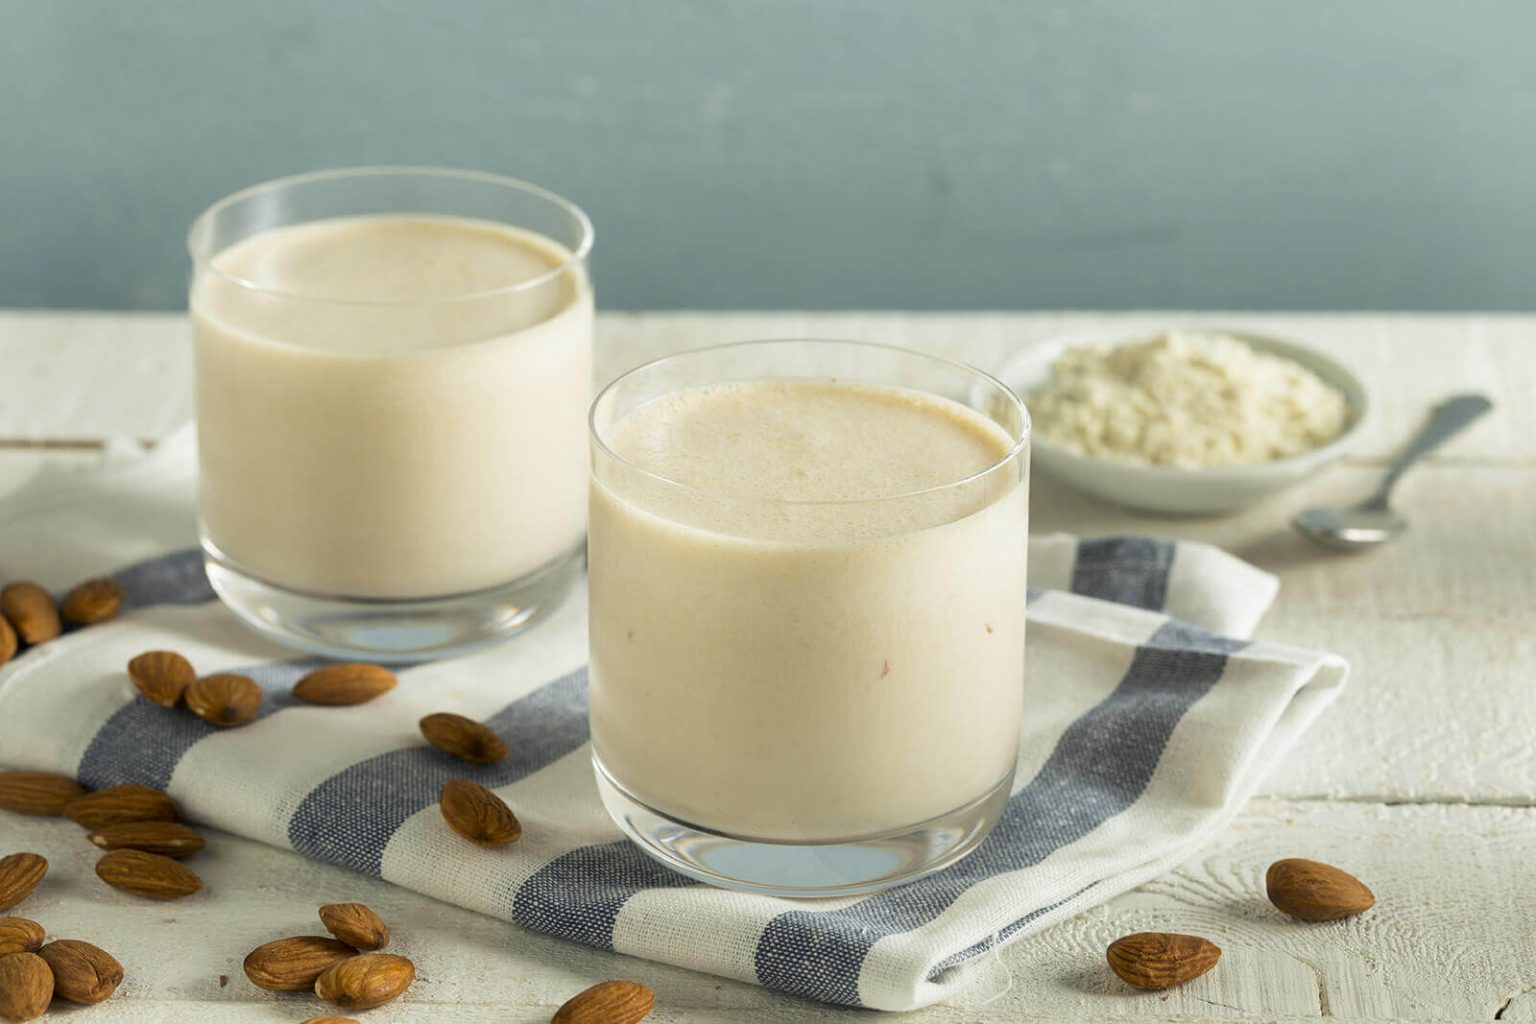 almond-milk-ingredient-711556771